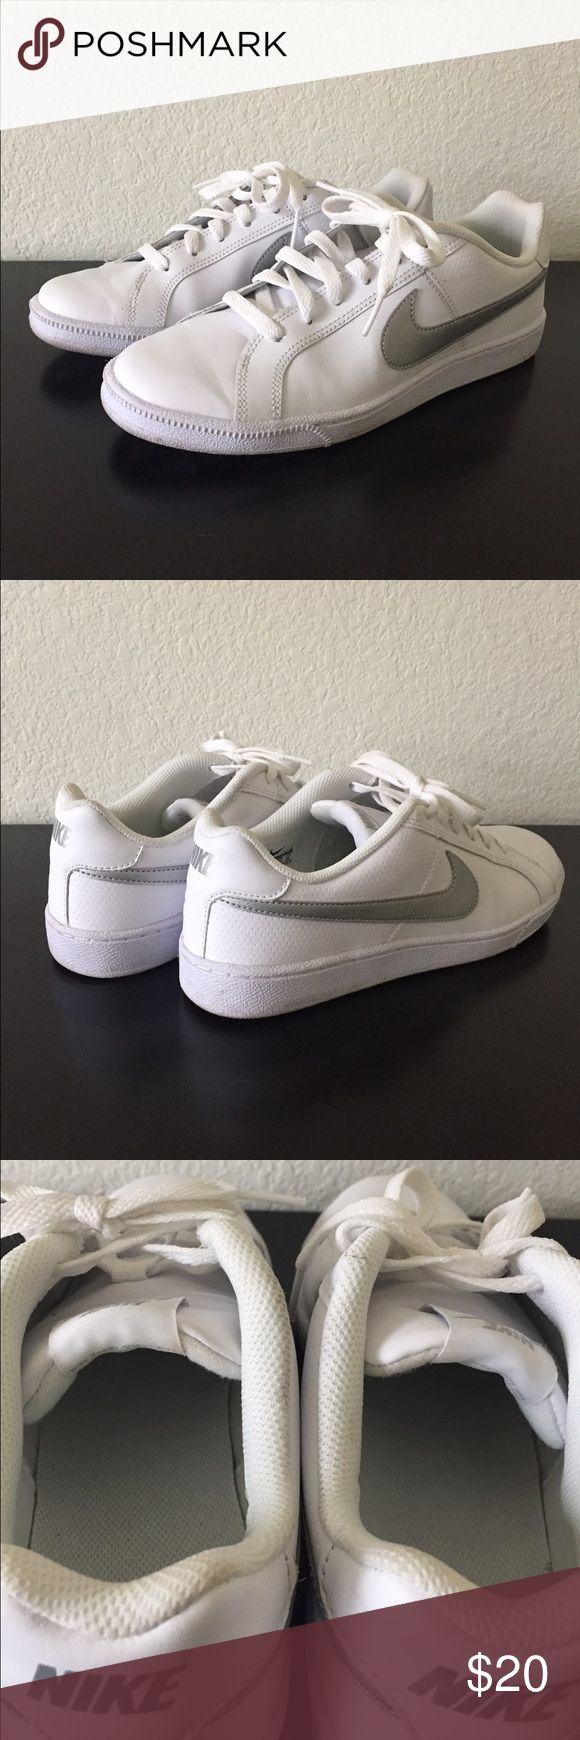 Nike street sneakers Nike street sneakers; size 9; no box. Worn twice. Great condition. Nike Shoes Sneakers